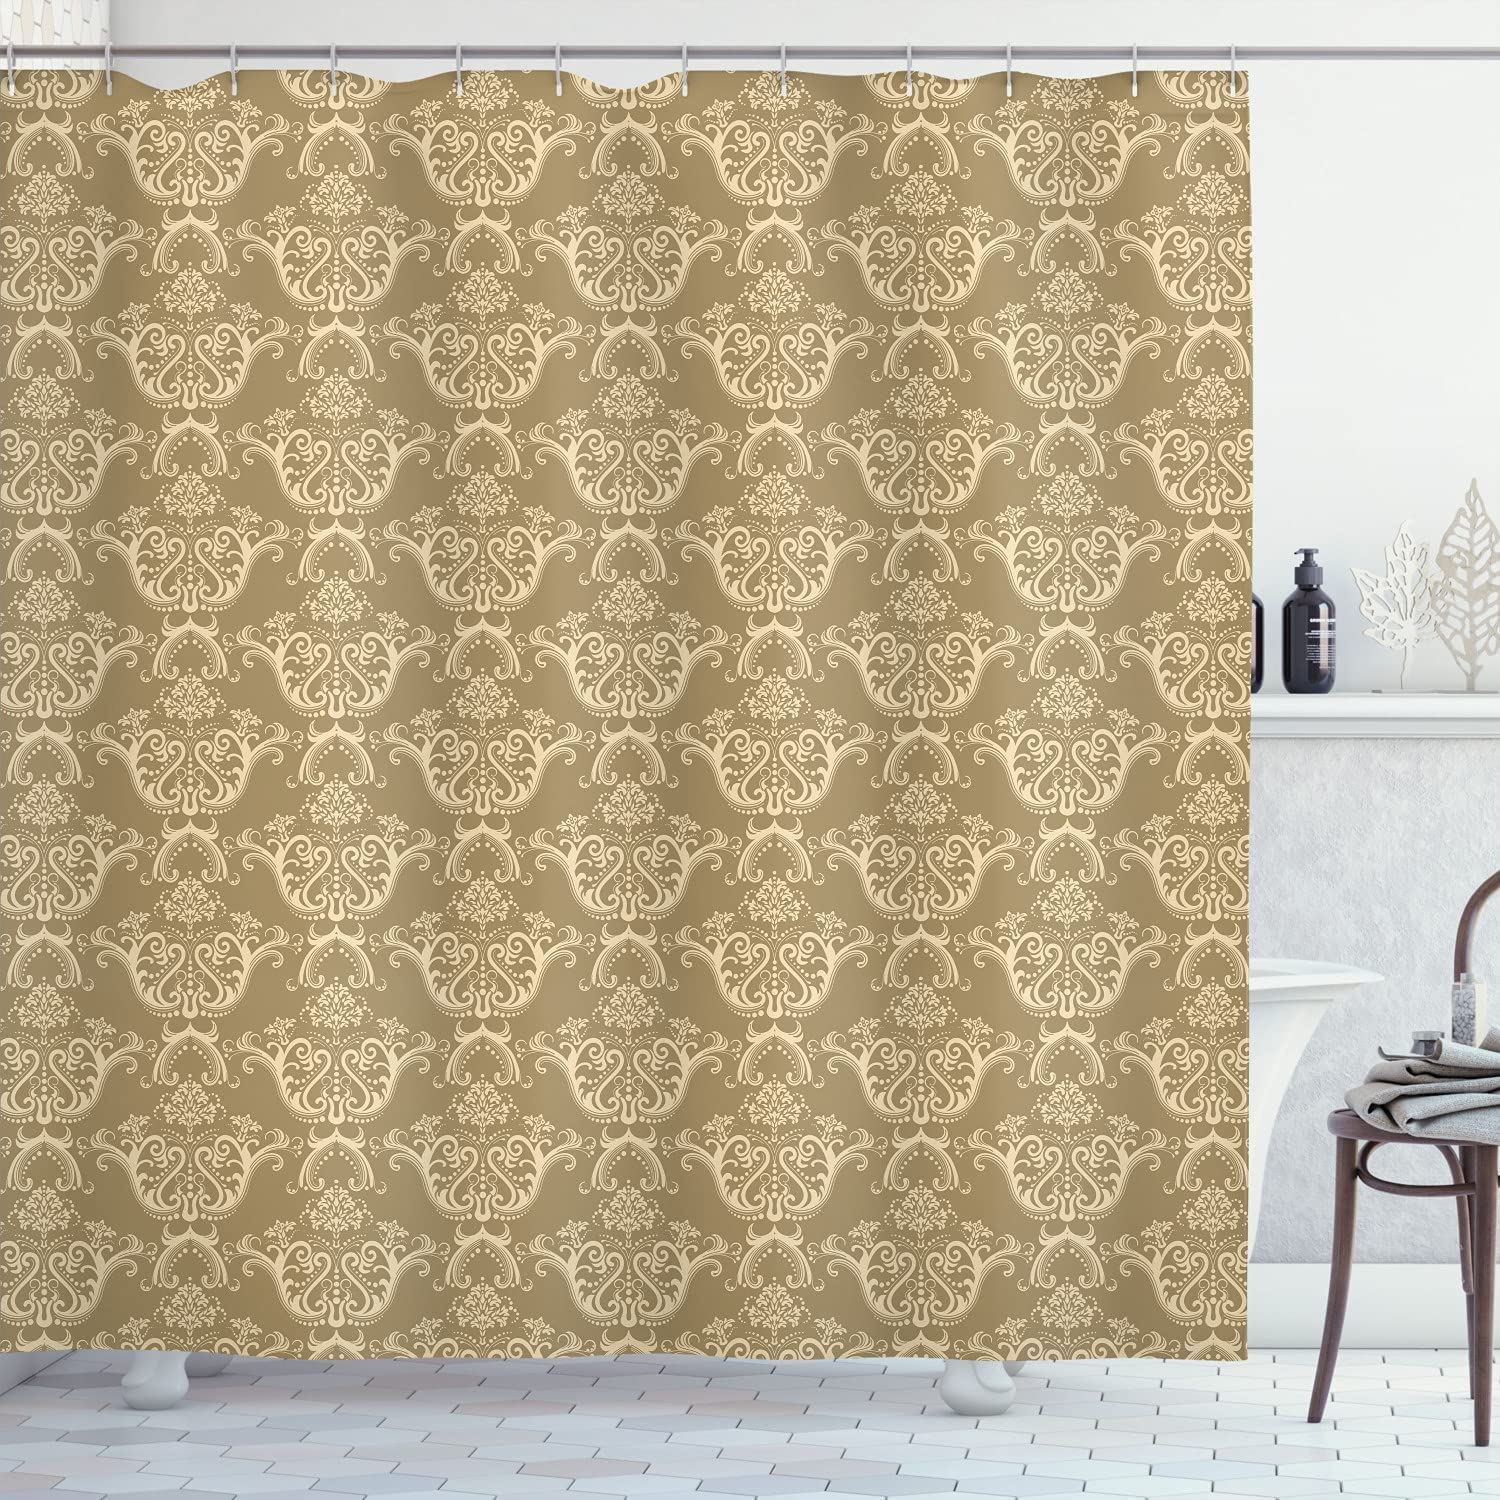 Lunarable Vintage Shower Curtain Dealing full price reduction Price reduction Rococo Damask Renais Victorian